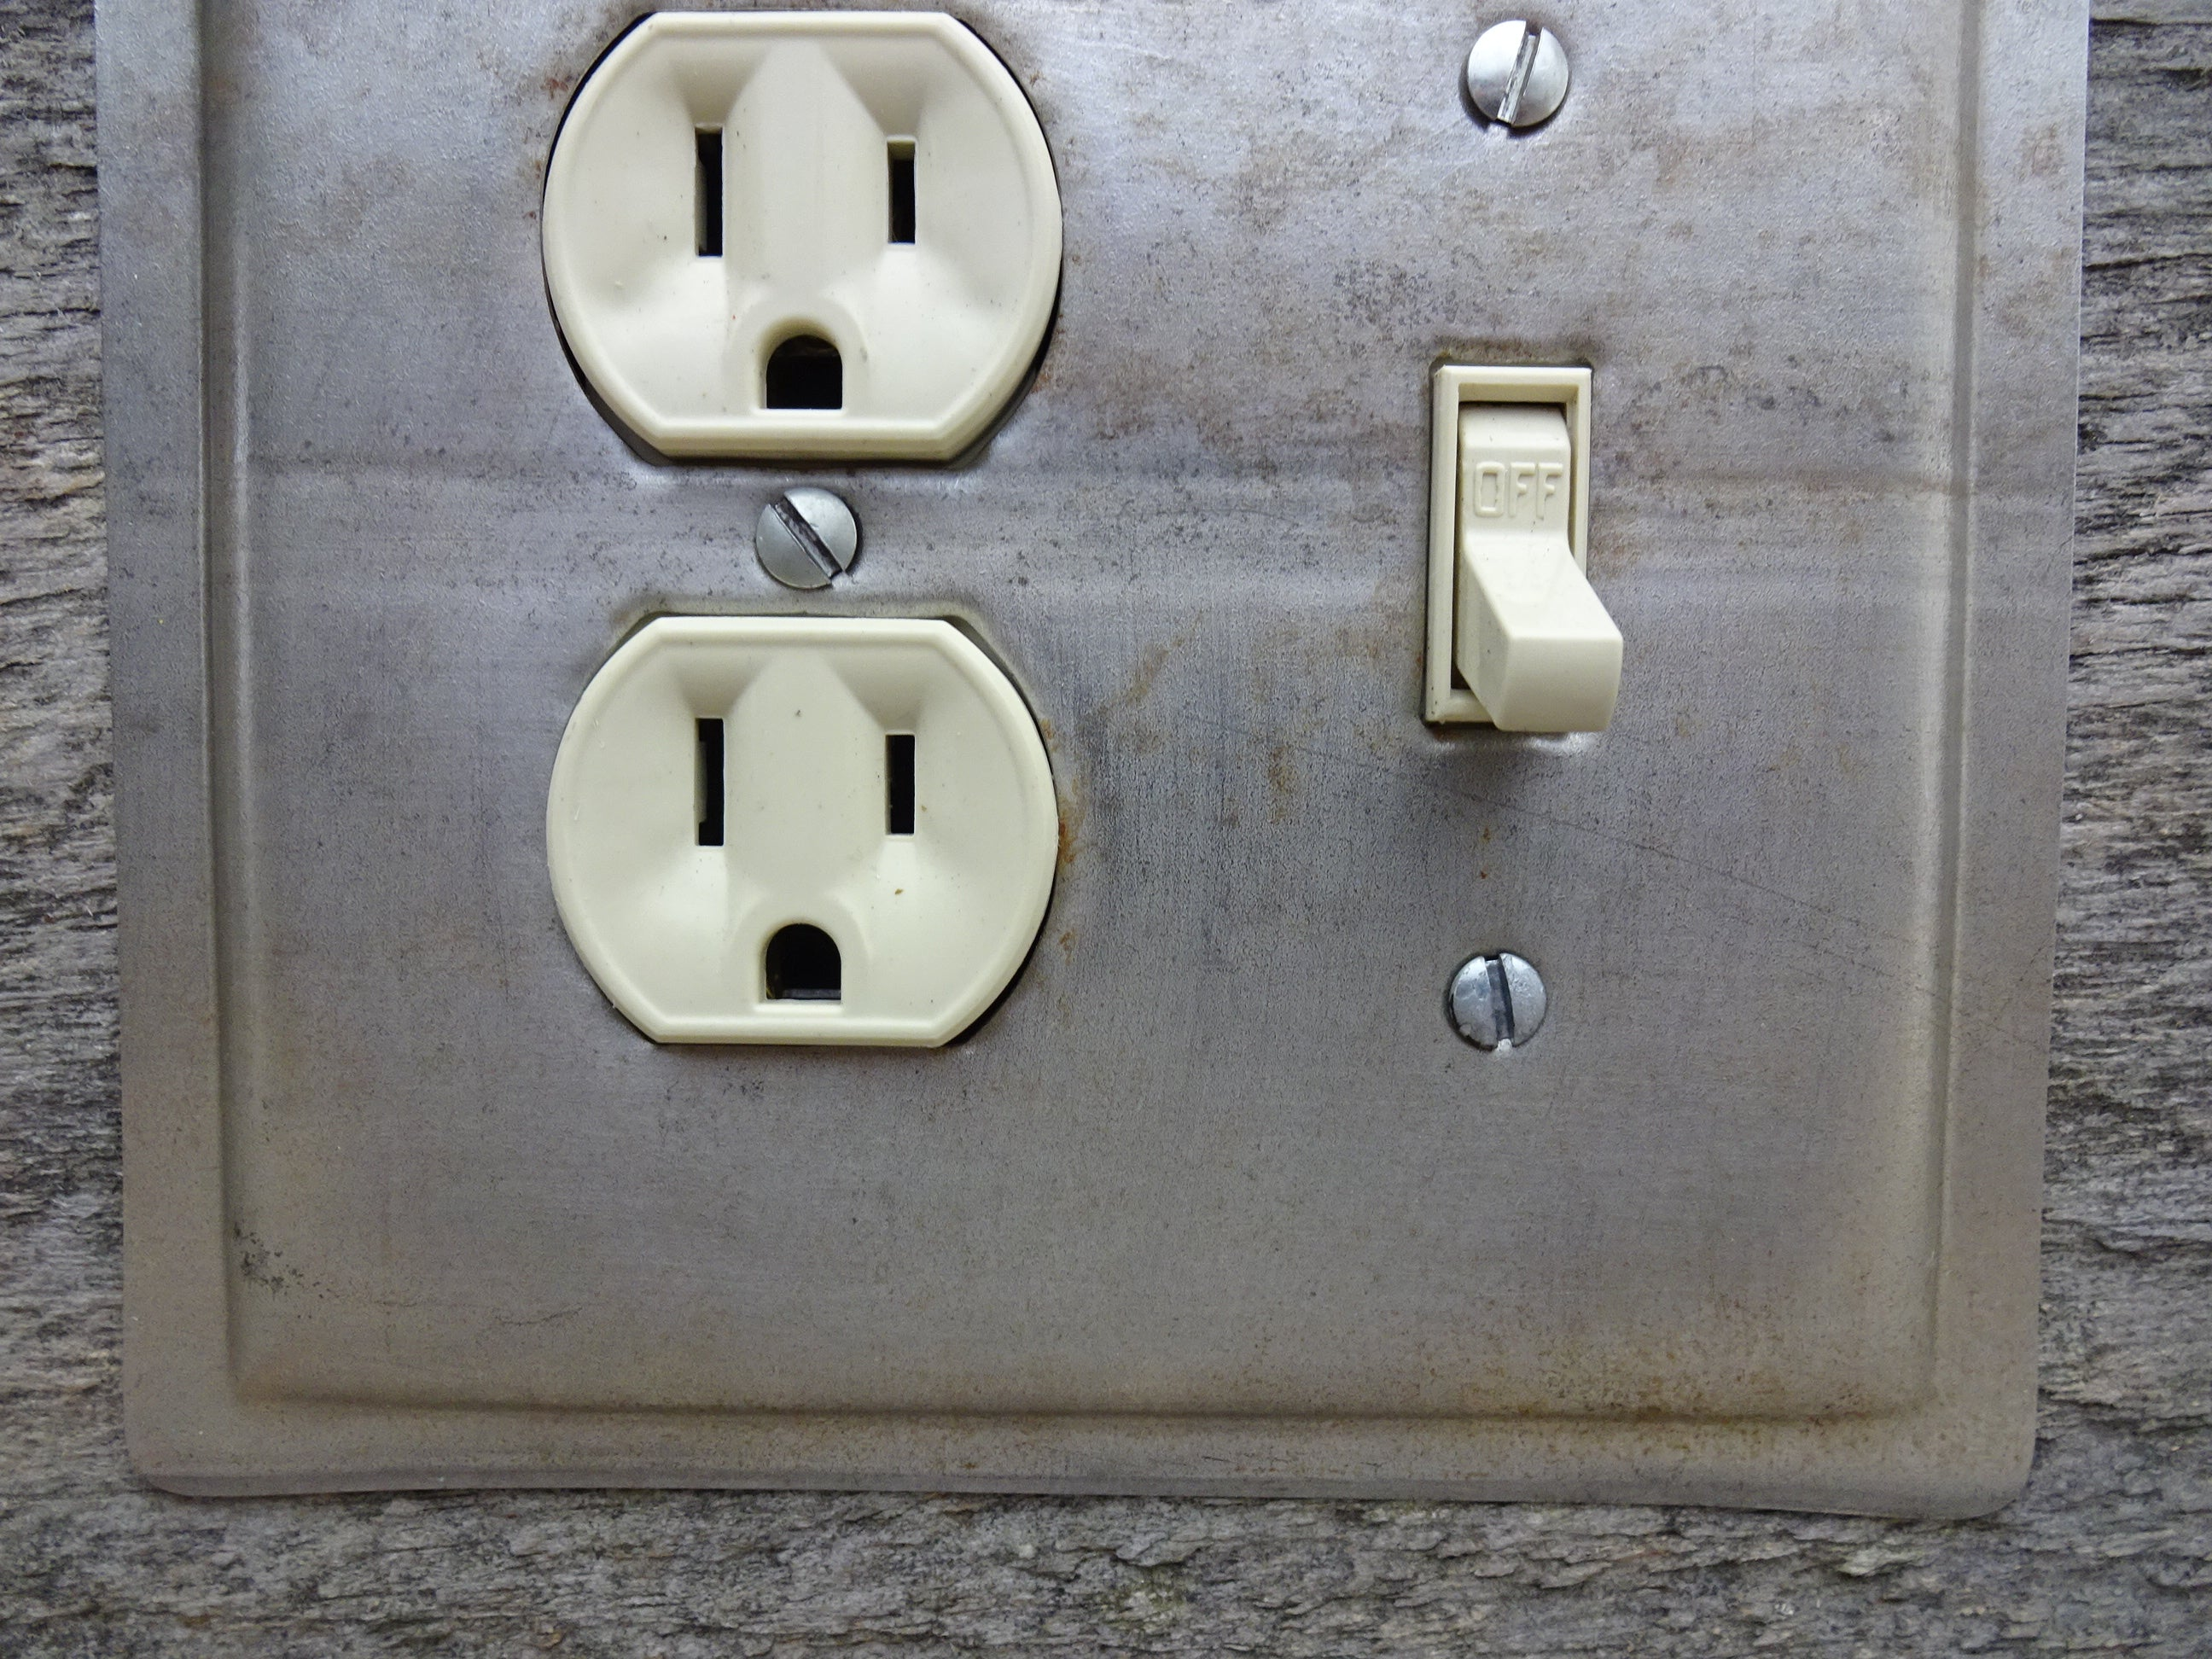 Combo Switch Outlet Cover Made From A Vintage Ekcoloy Baking Pan